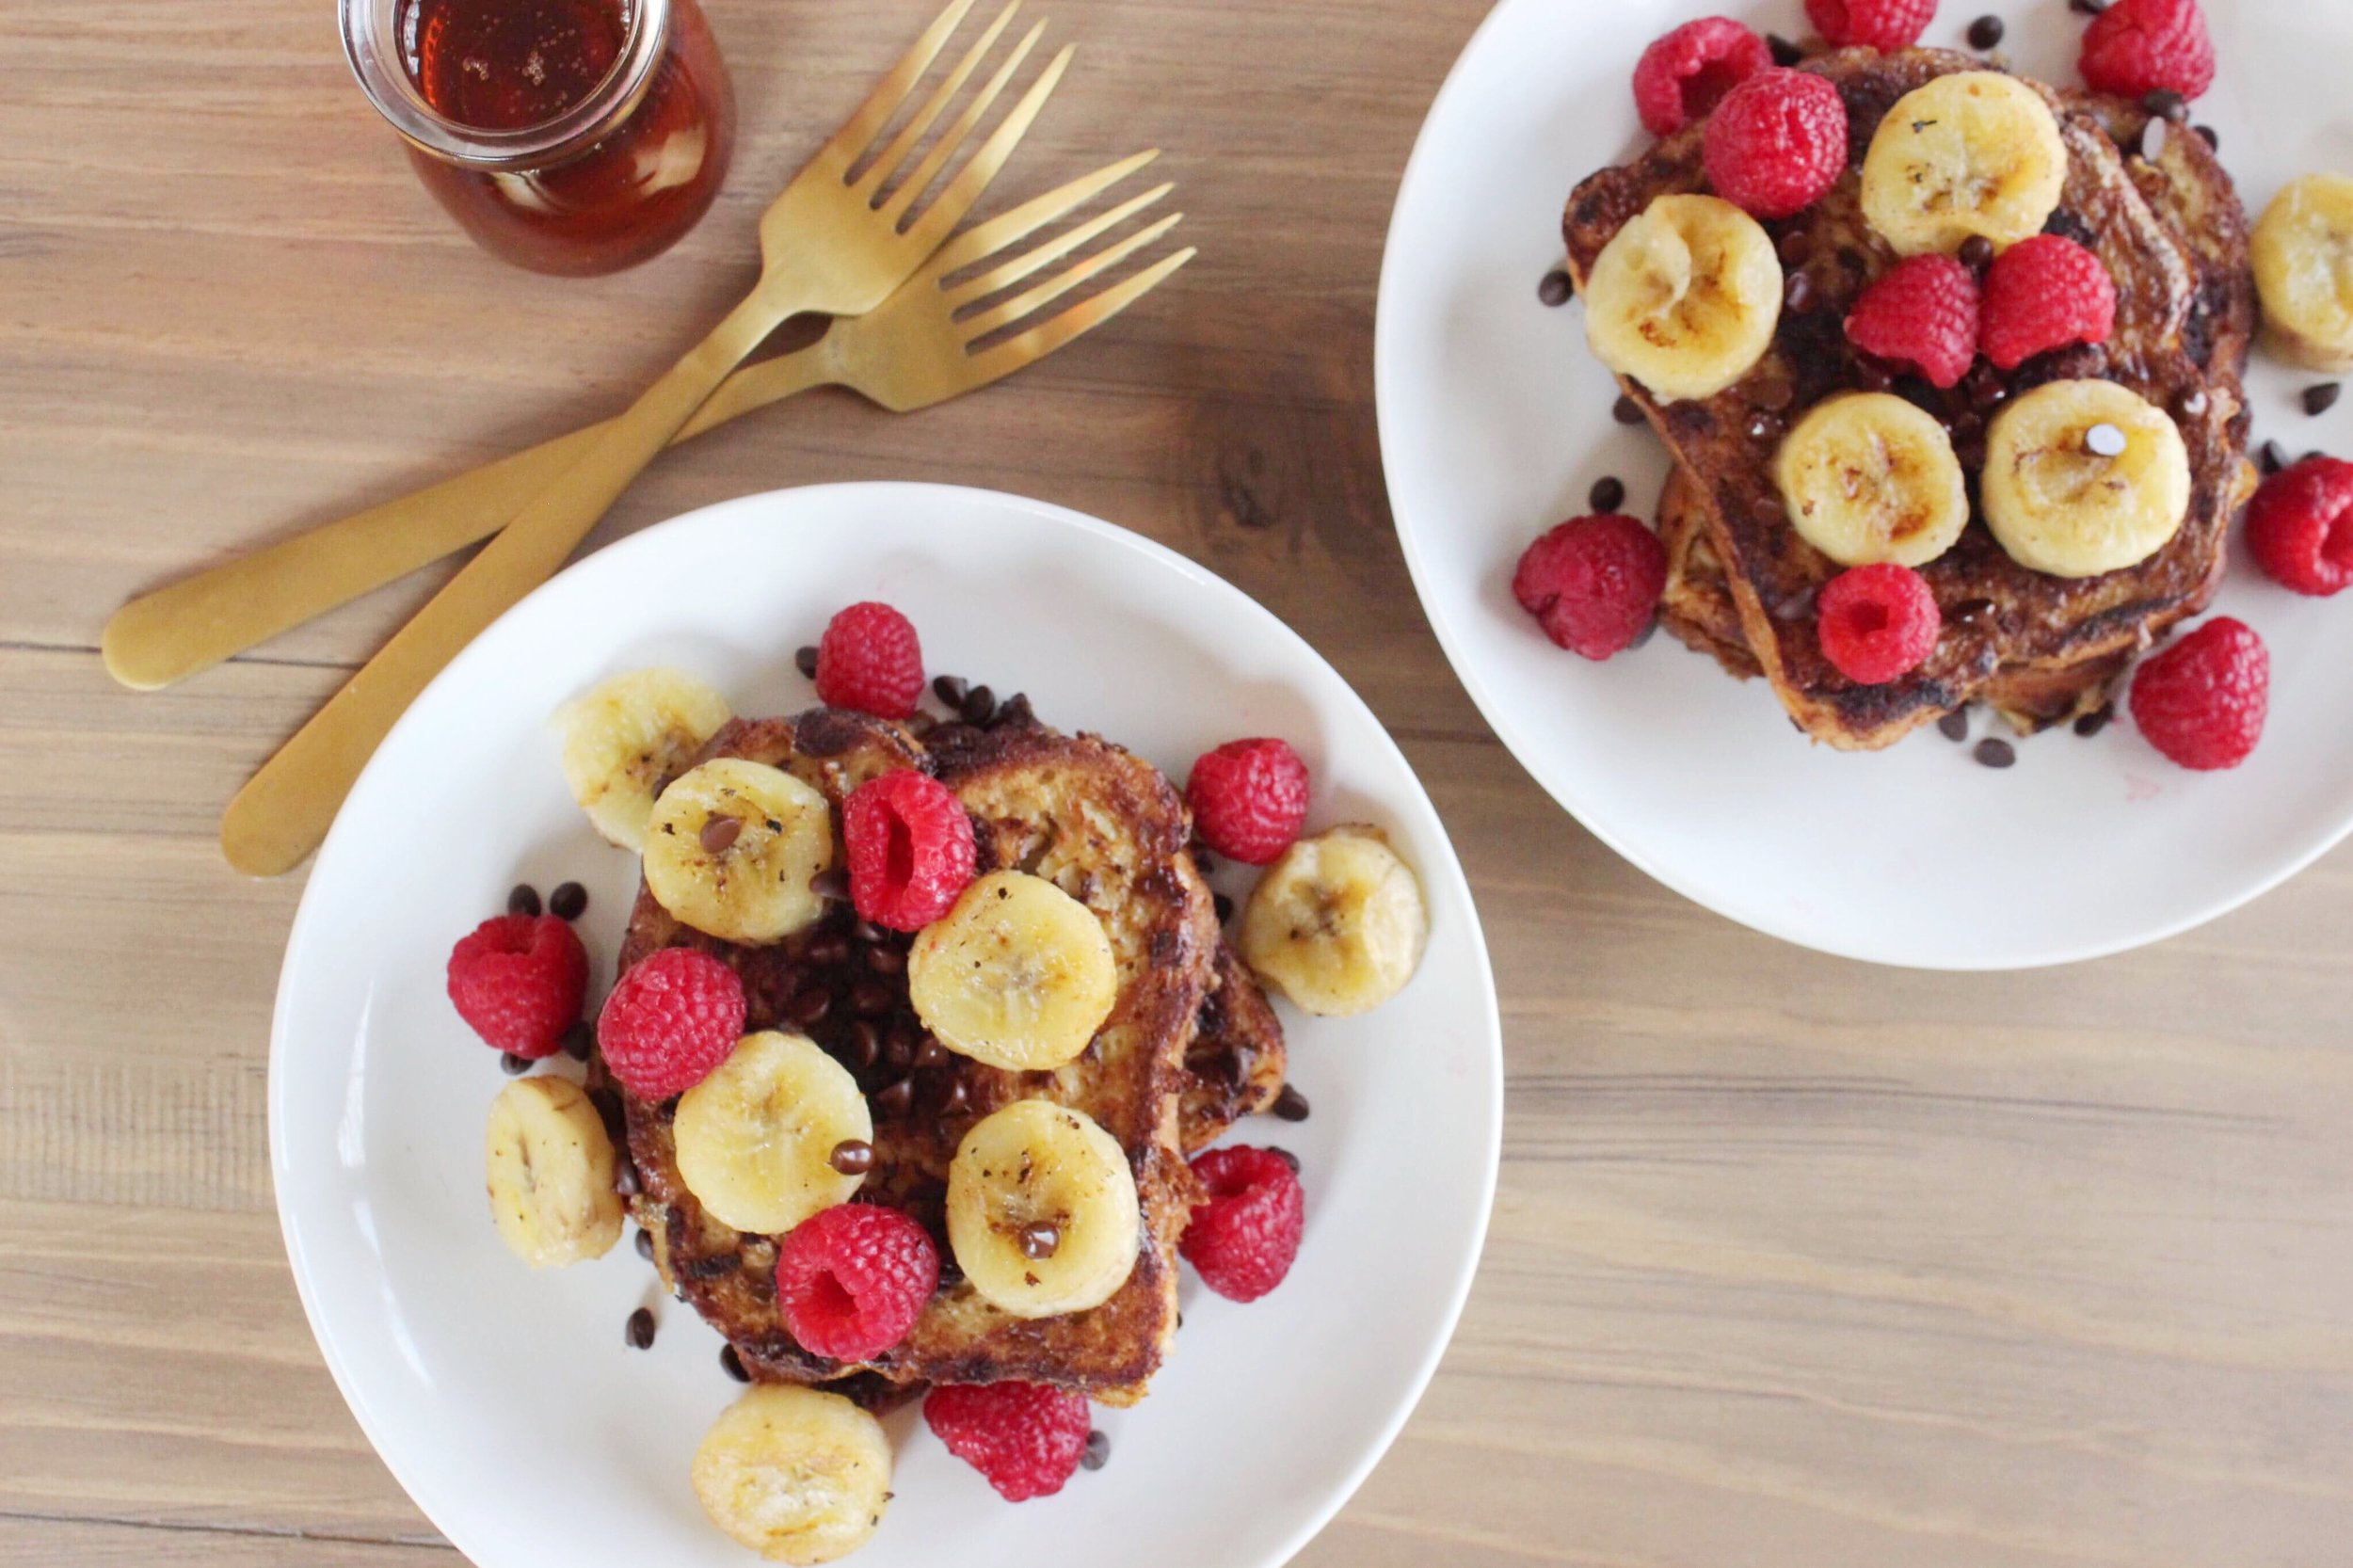 two-chocolate-french-toasts-plates